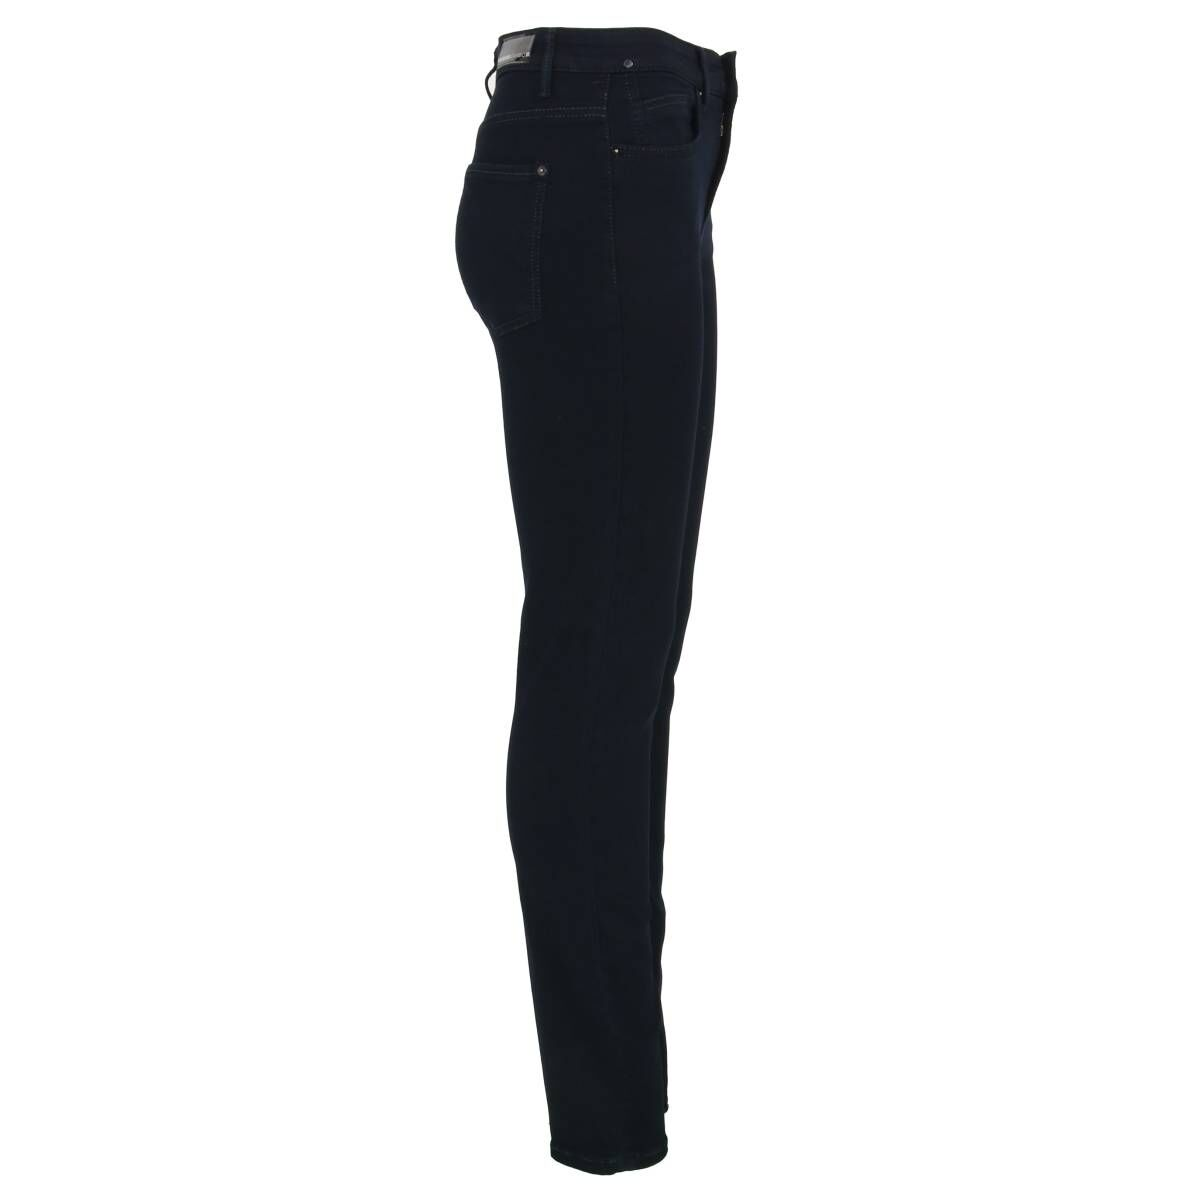 Cambio trousers PARLA 6199-0015-06 black at Penninkhoffashion.com